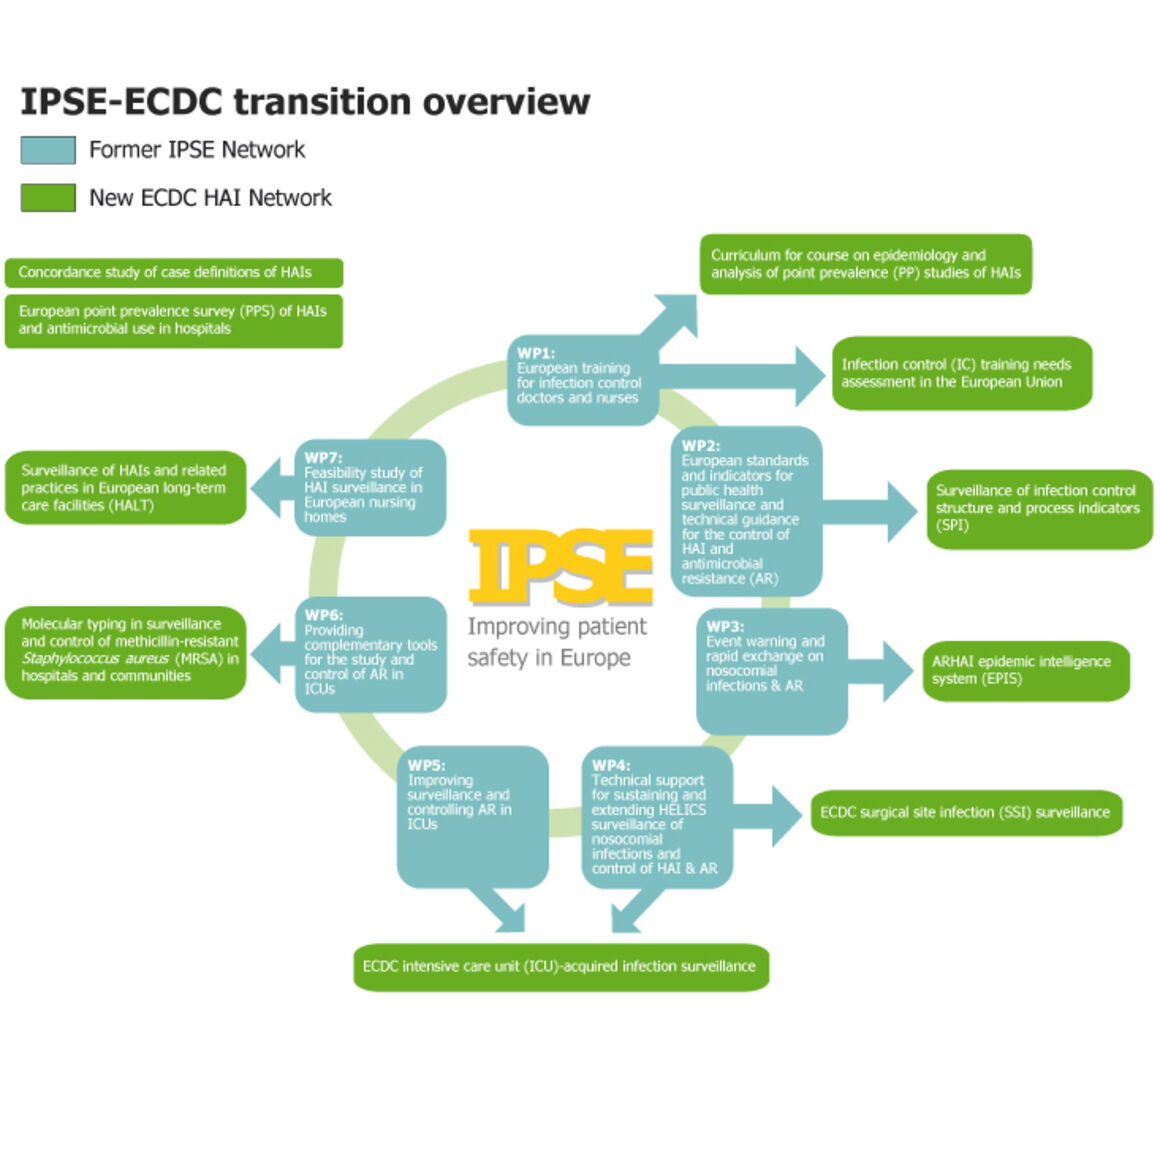 Picture of the transition from the network IPSE to ECDC network.